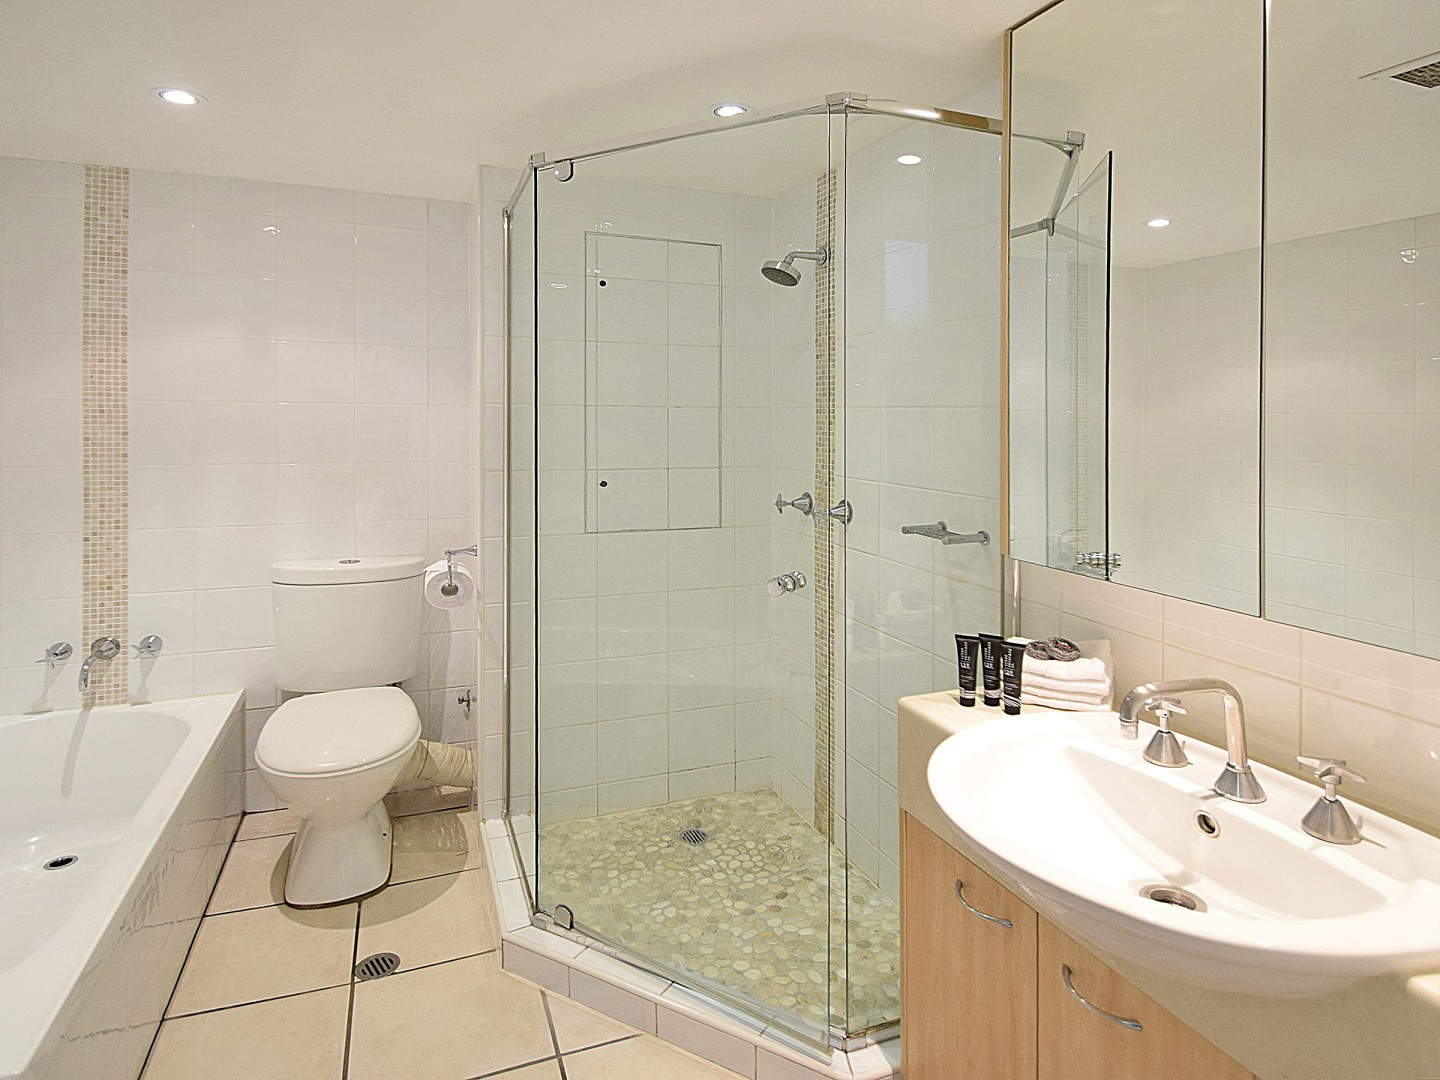 27-Fairshore-Bathroom.jpg